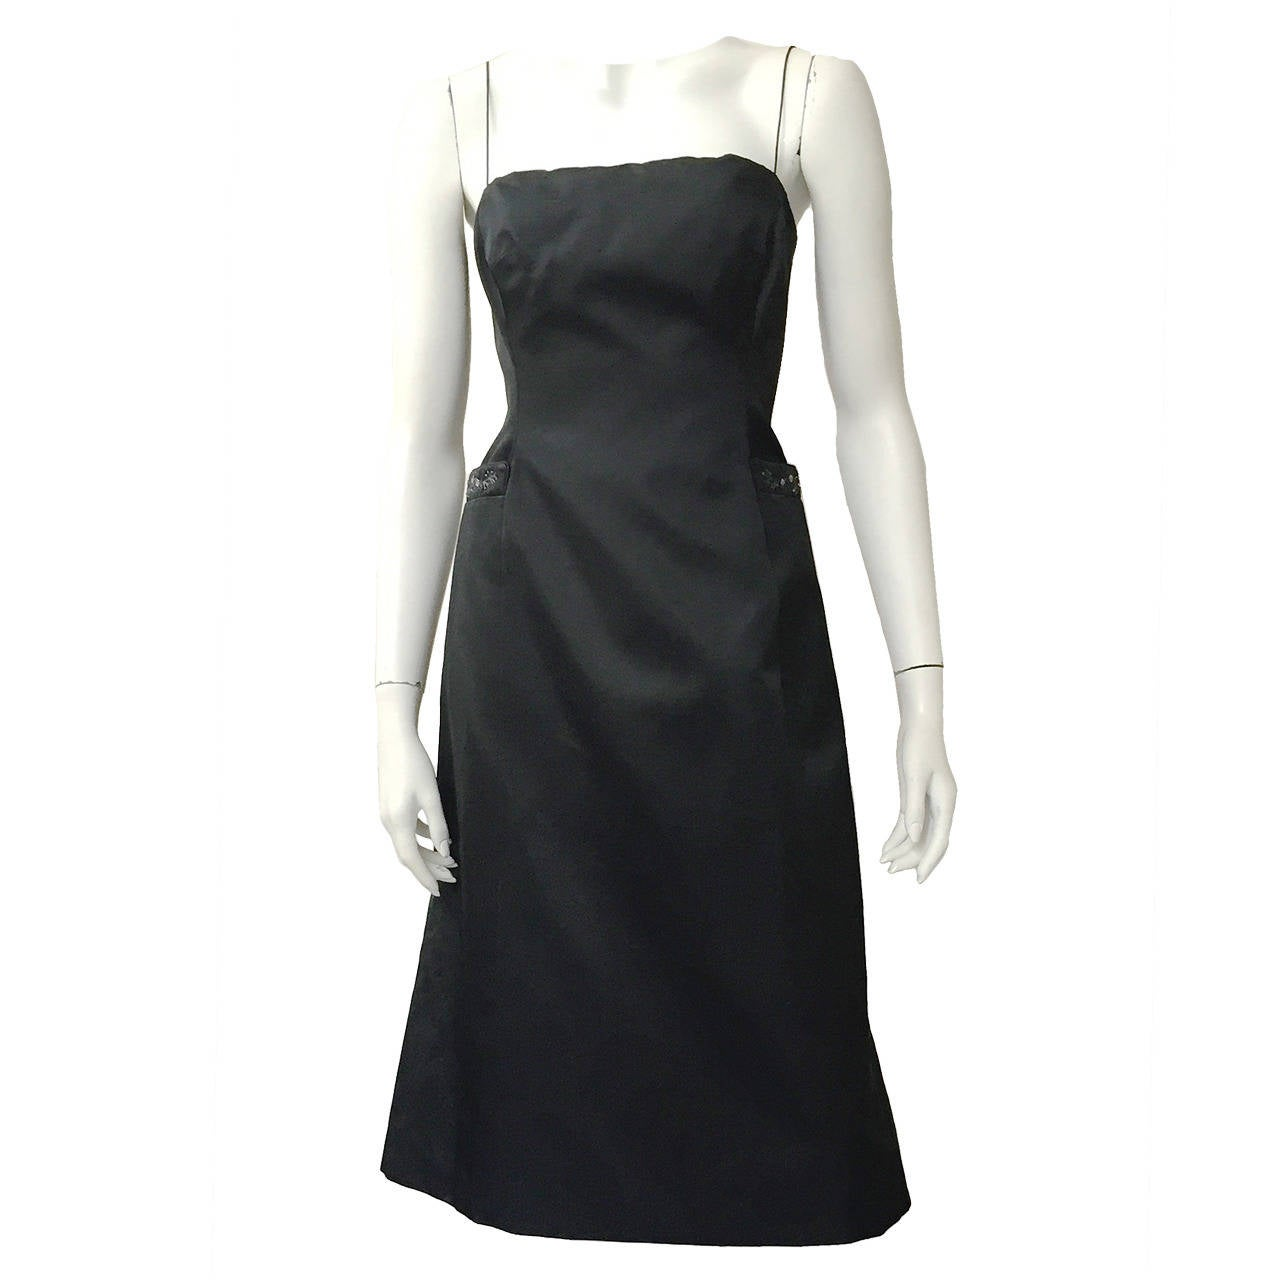 Richard Tyler Couture Black Silk Dress Size 6. For Sale